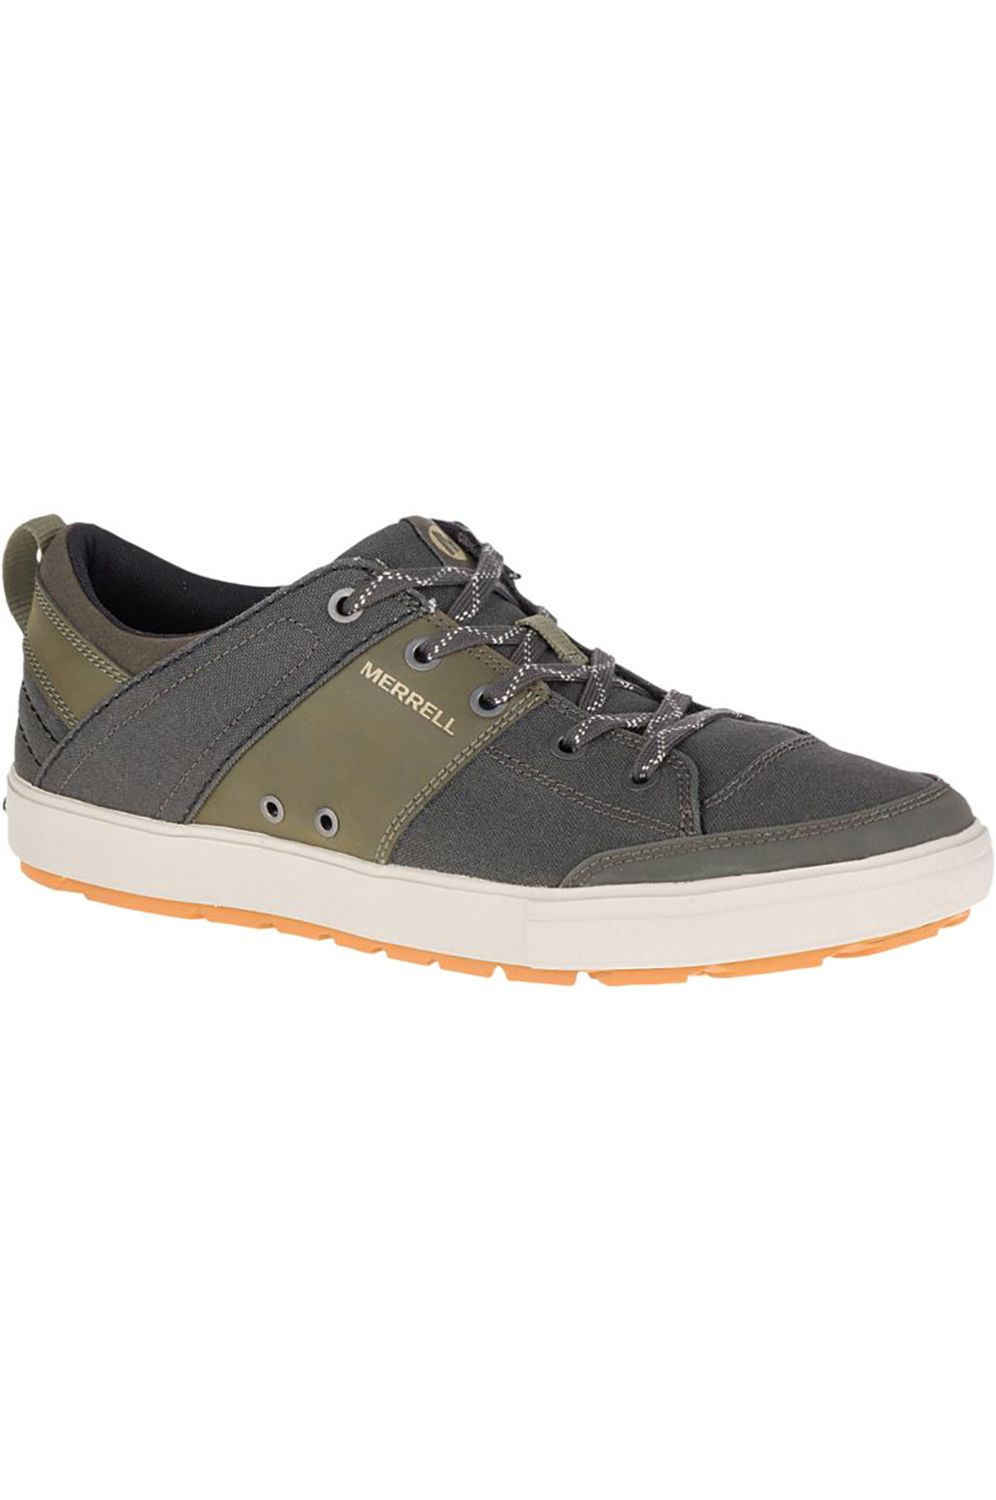 Tenis Merrell RANT DISCOVERY LACE CANVAS Beluga